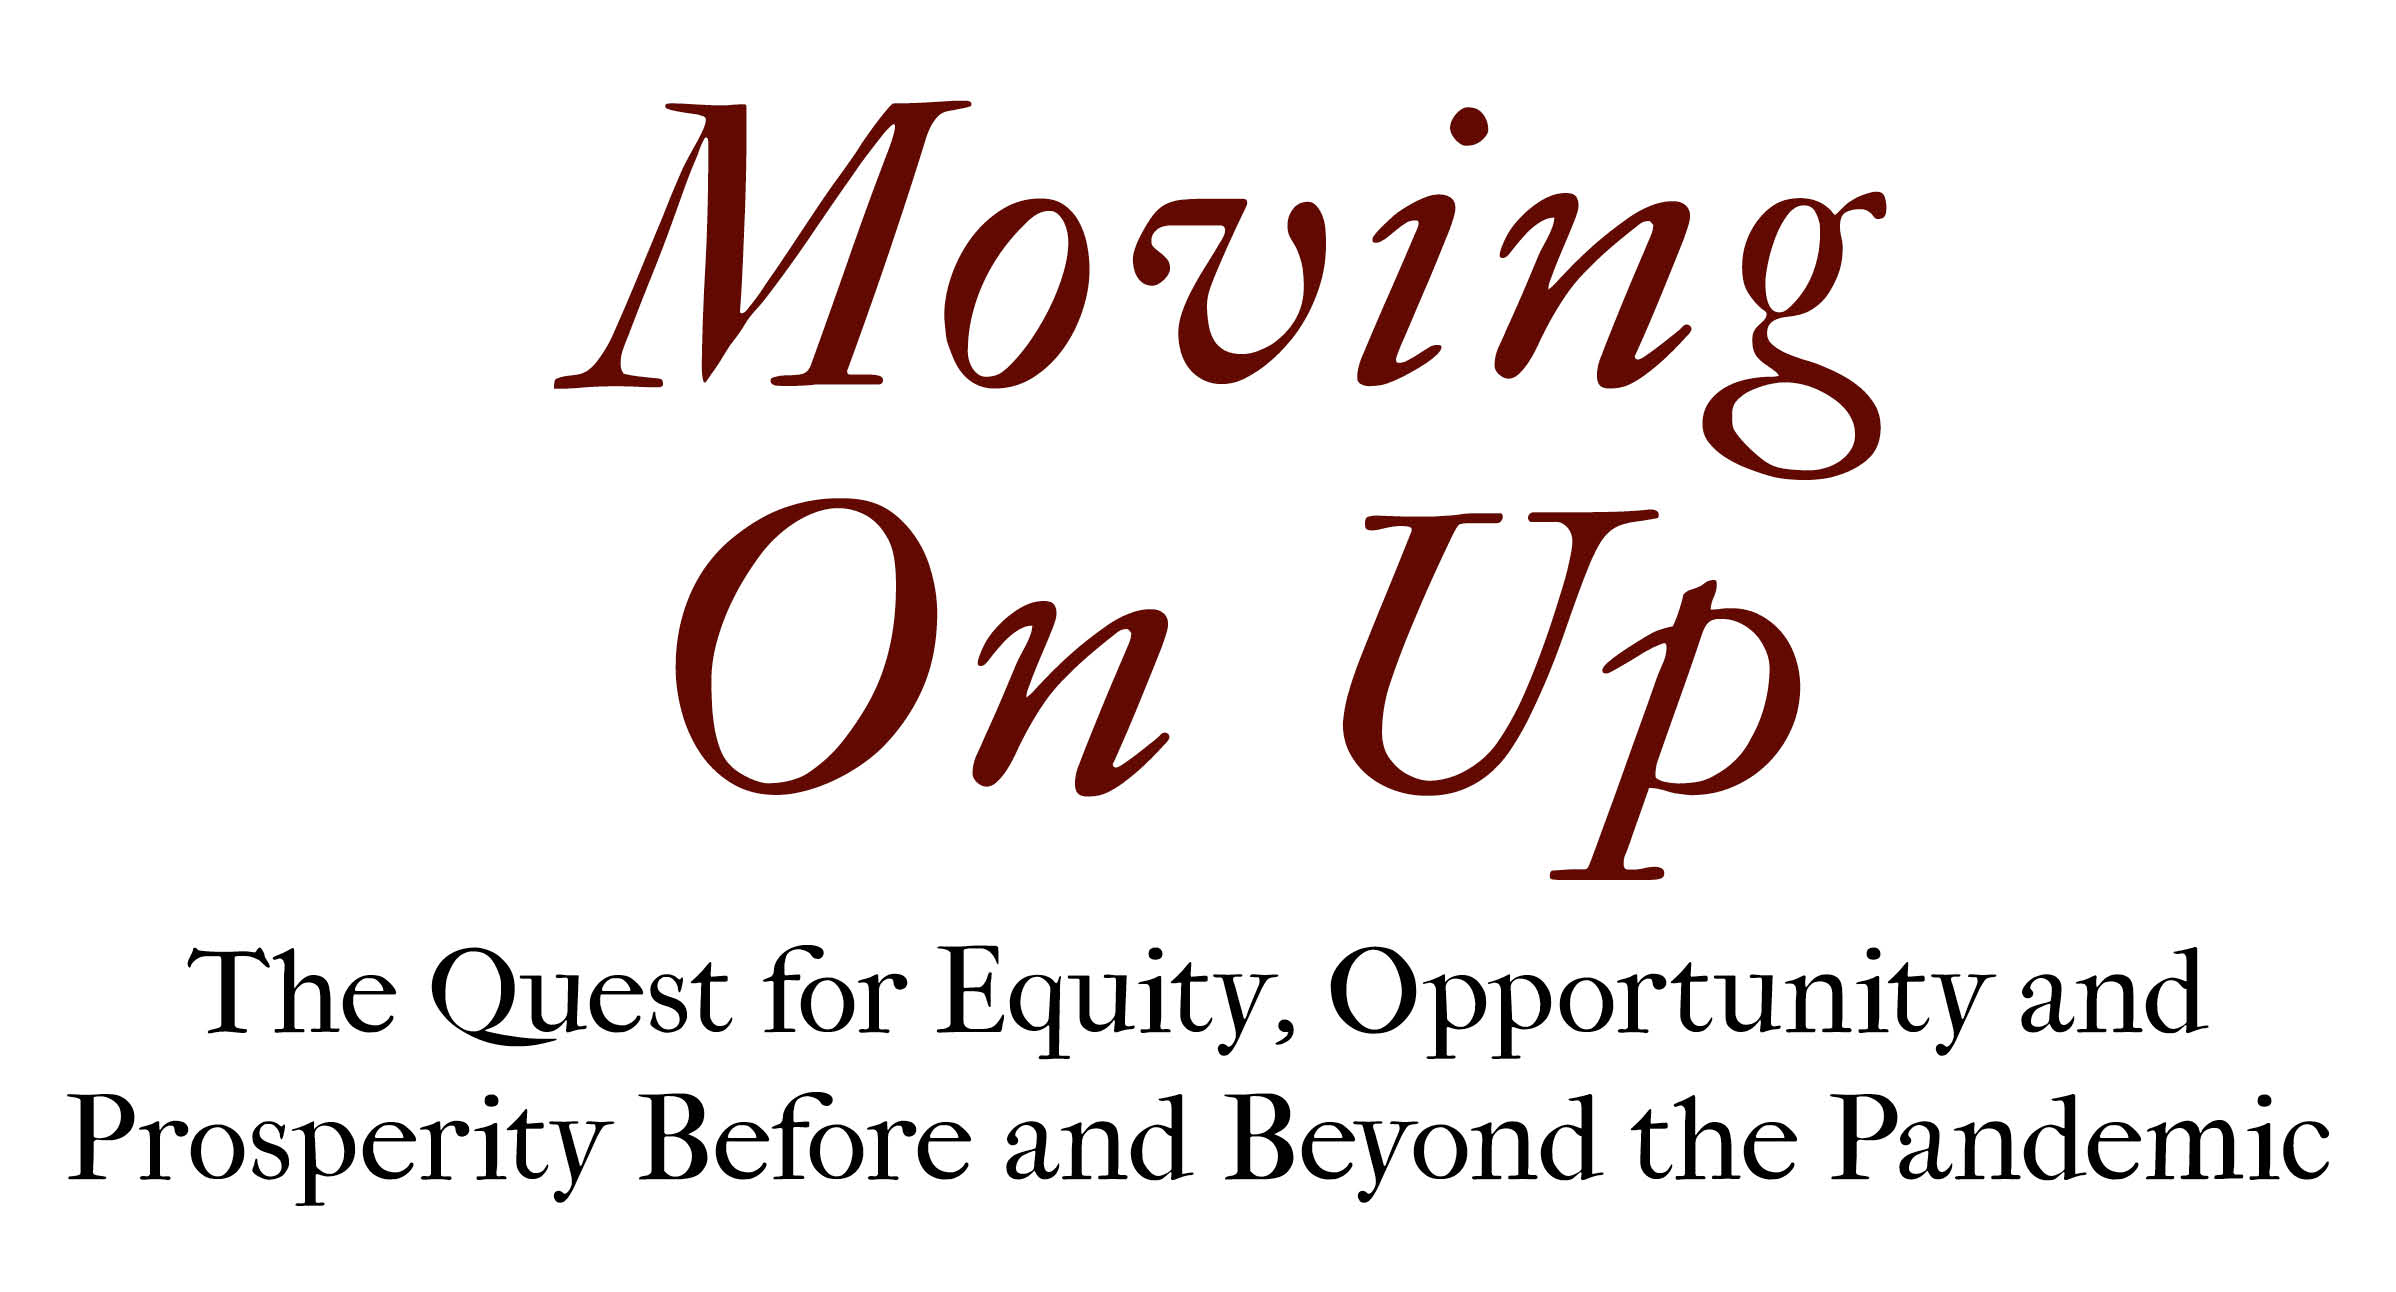 Andy Hargreaves: Moving On Up Webinar Series